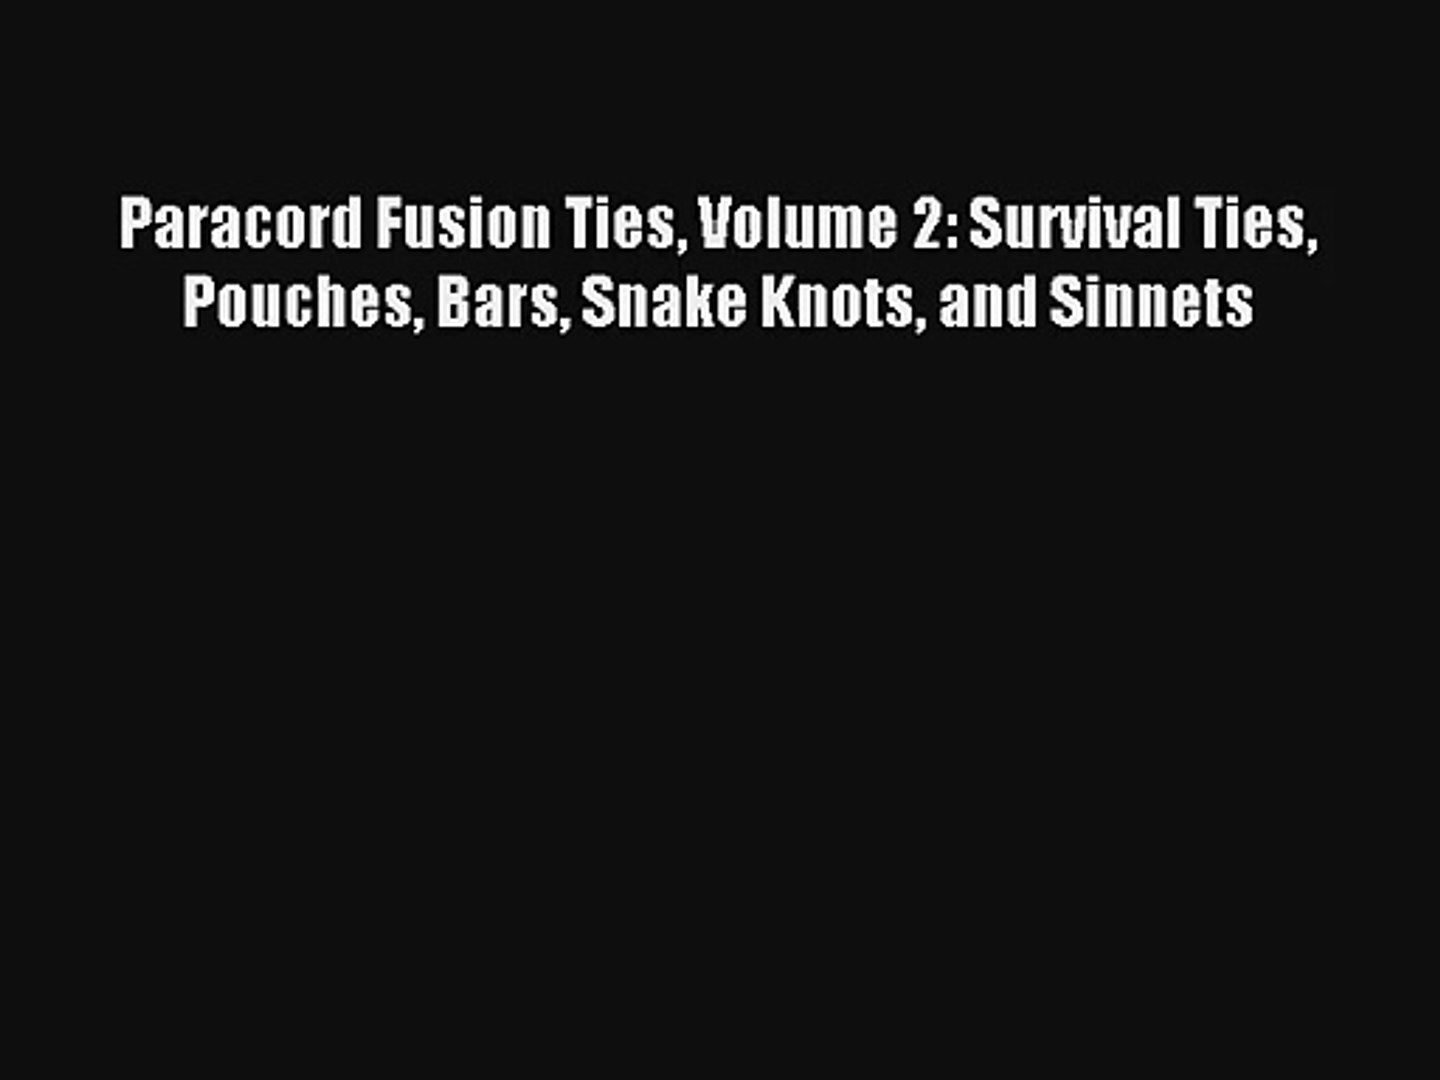 Paracord Fusion Ties Volume 2: Survival Ties Pouches Bars Snake Knots and Sinnets [Read] Full